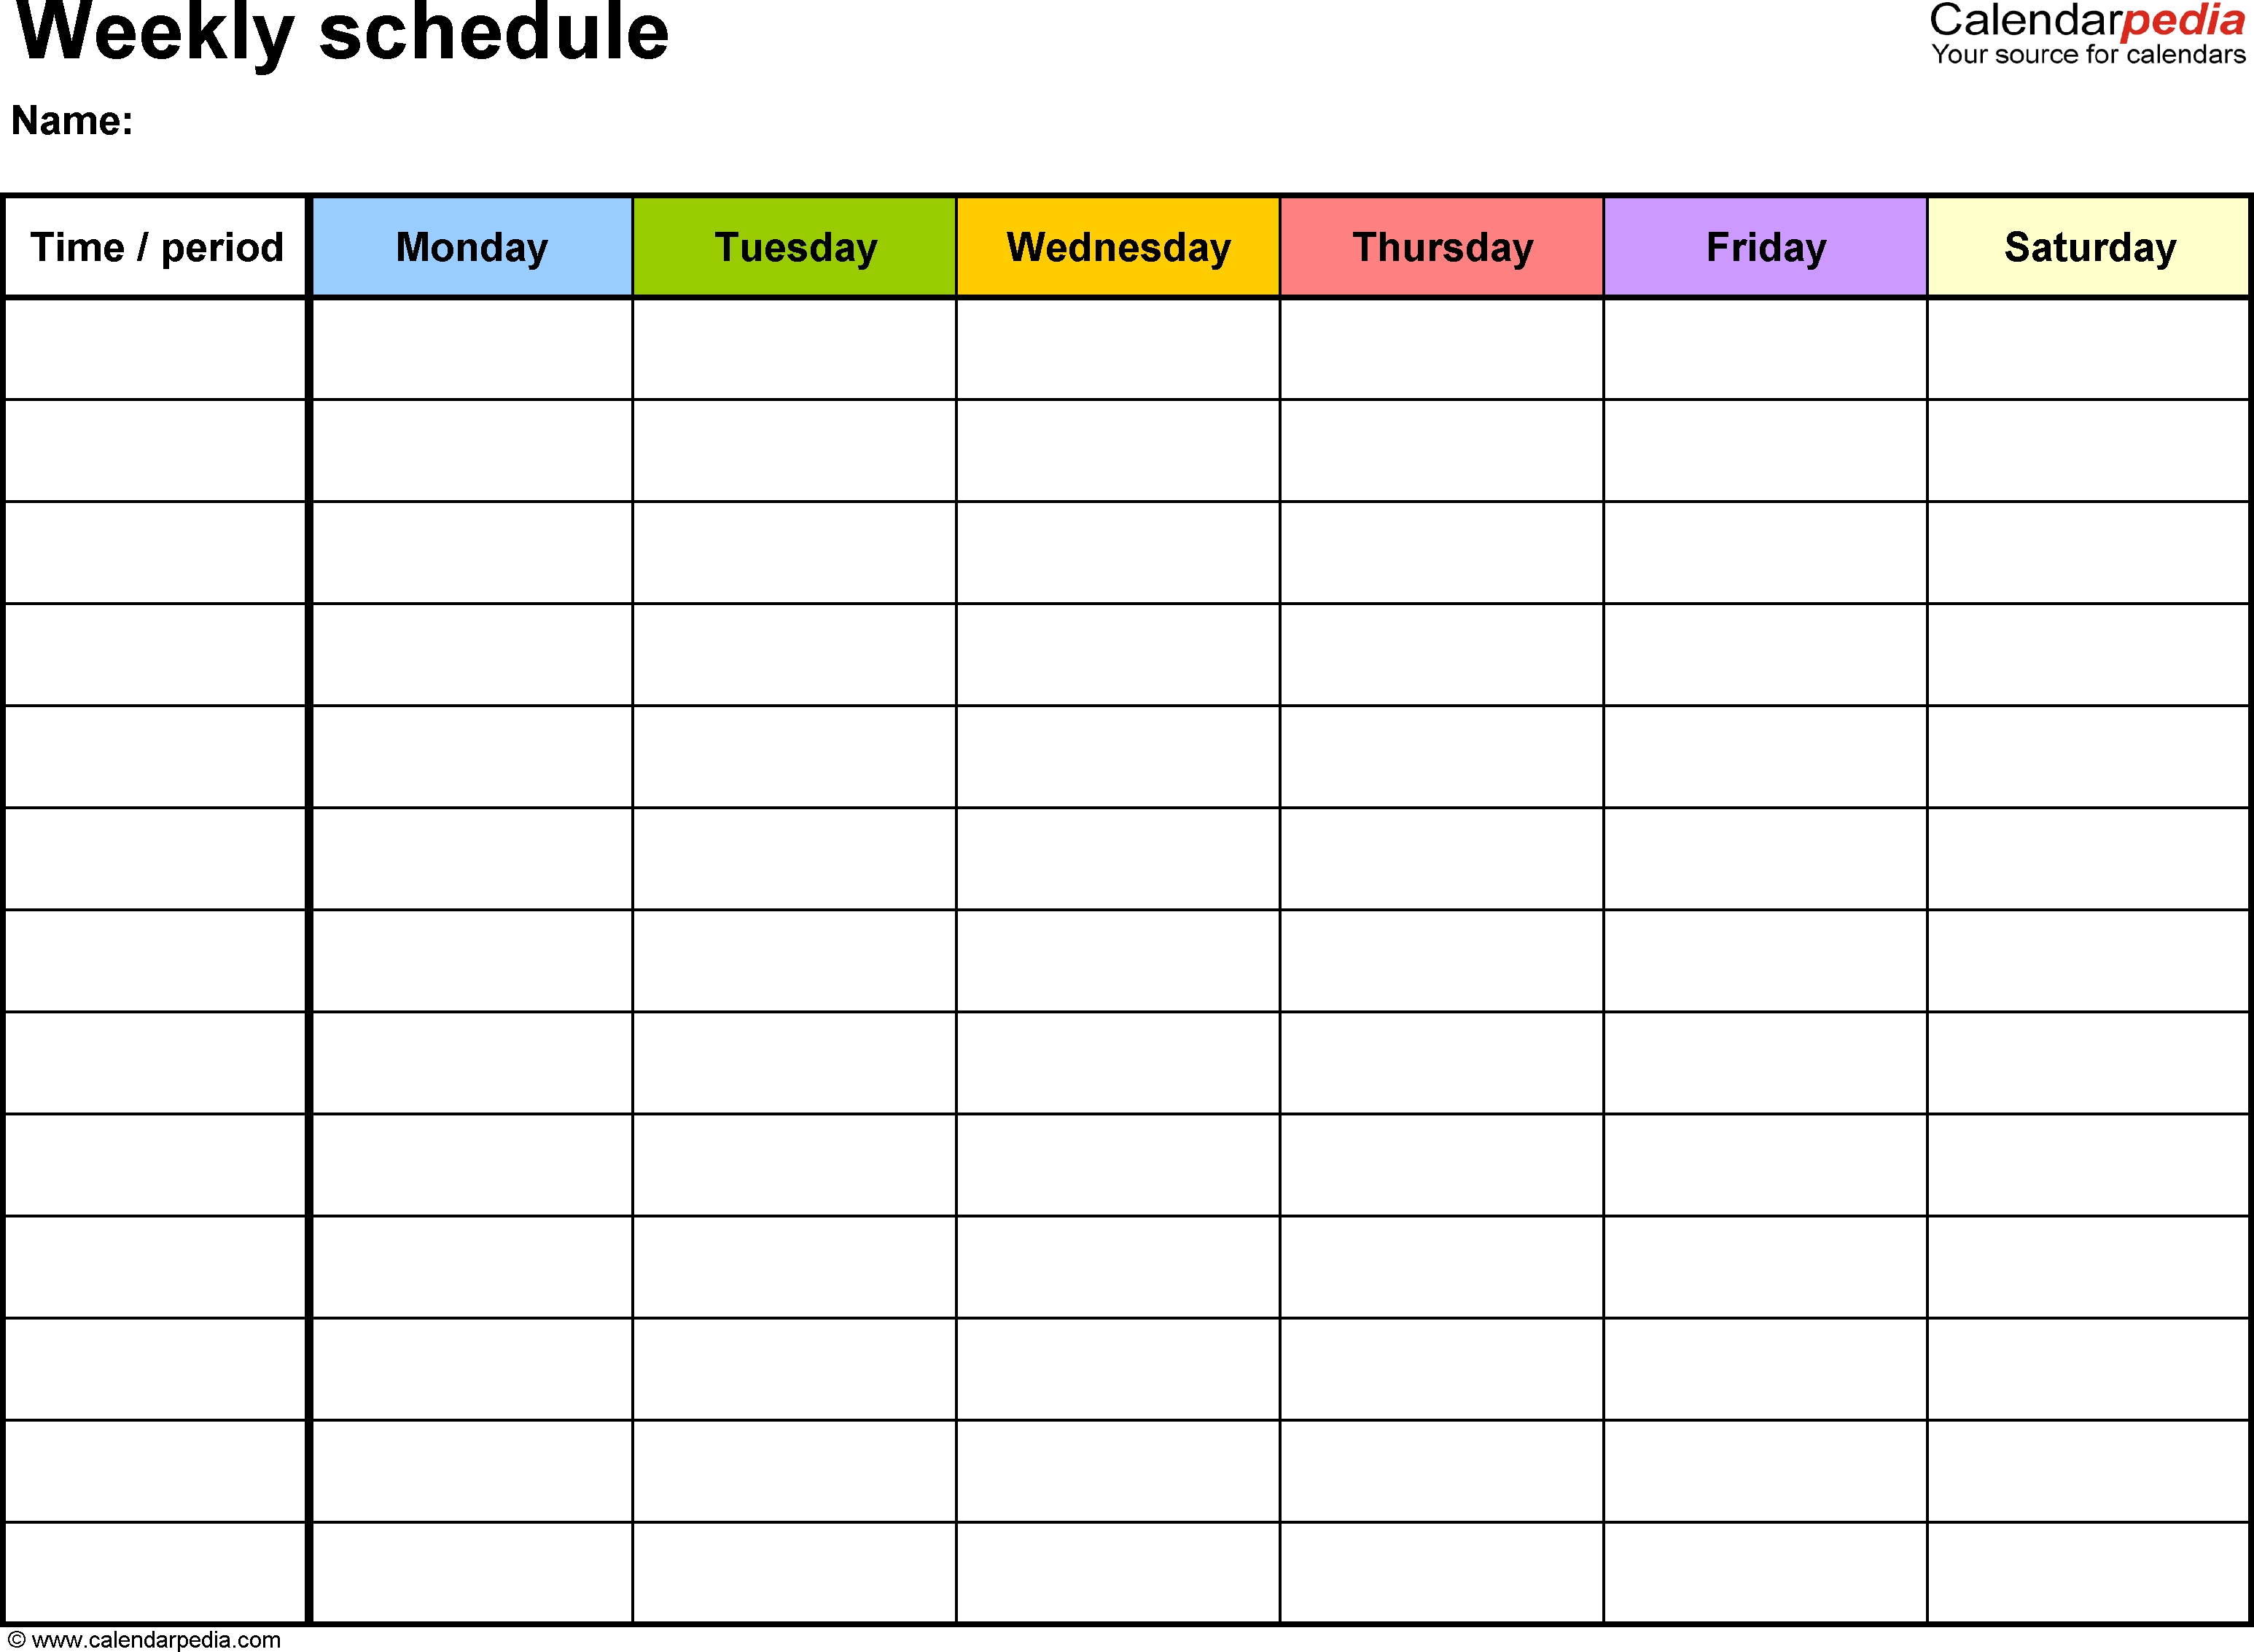 Free Weekly Schedule Templates For Word - 18 Templates 1 Week Blank Calendar Template